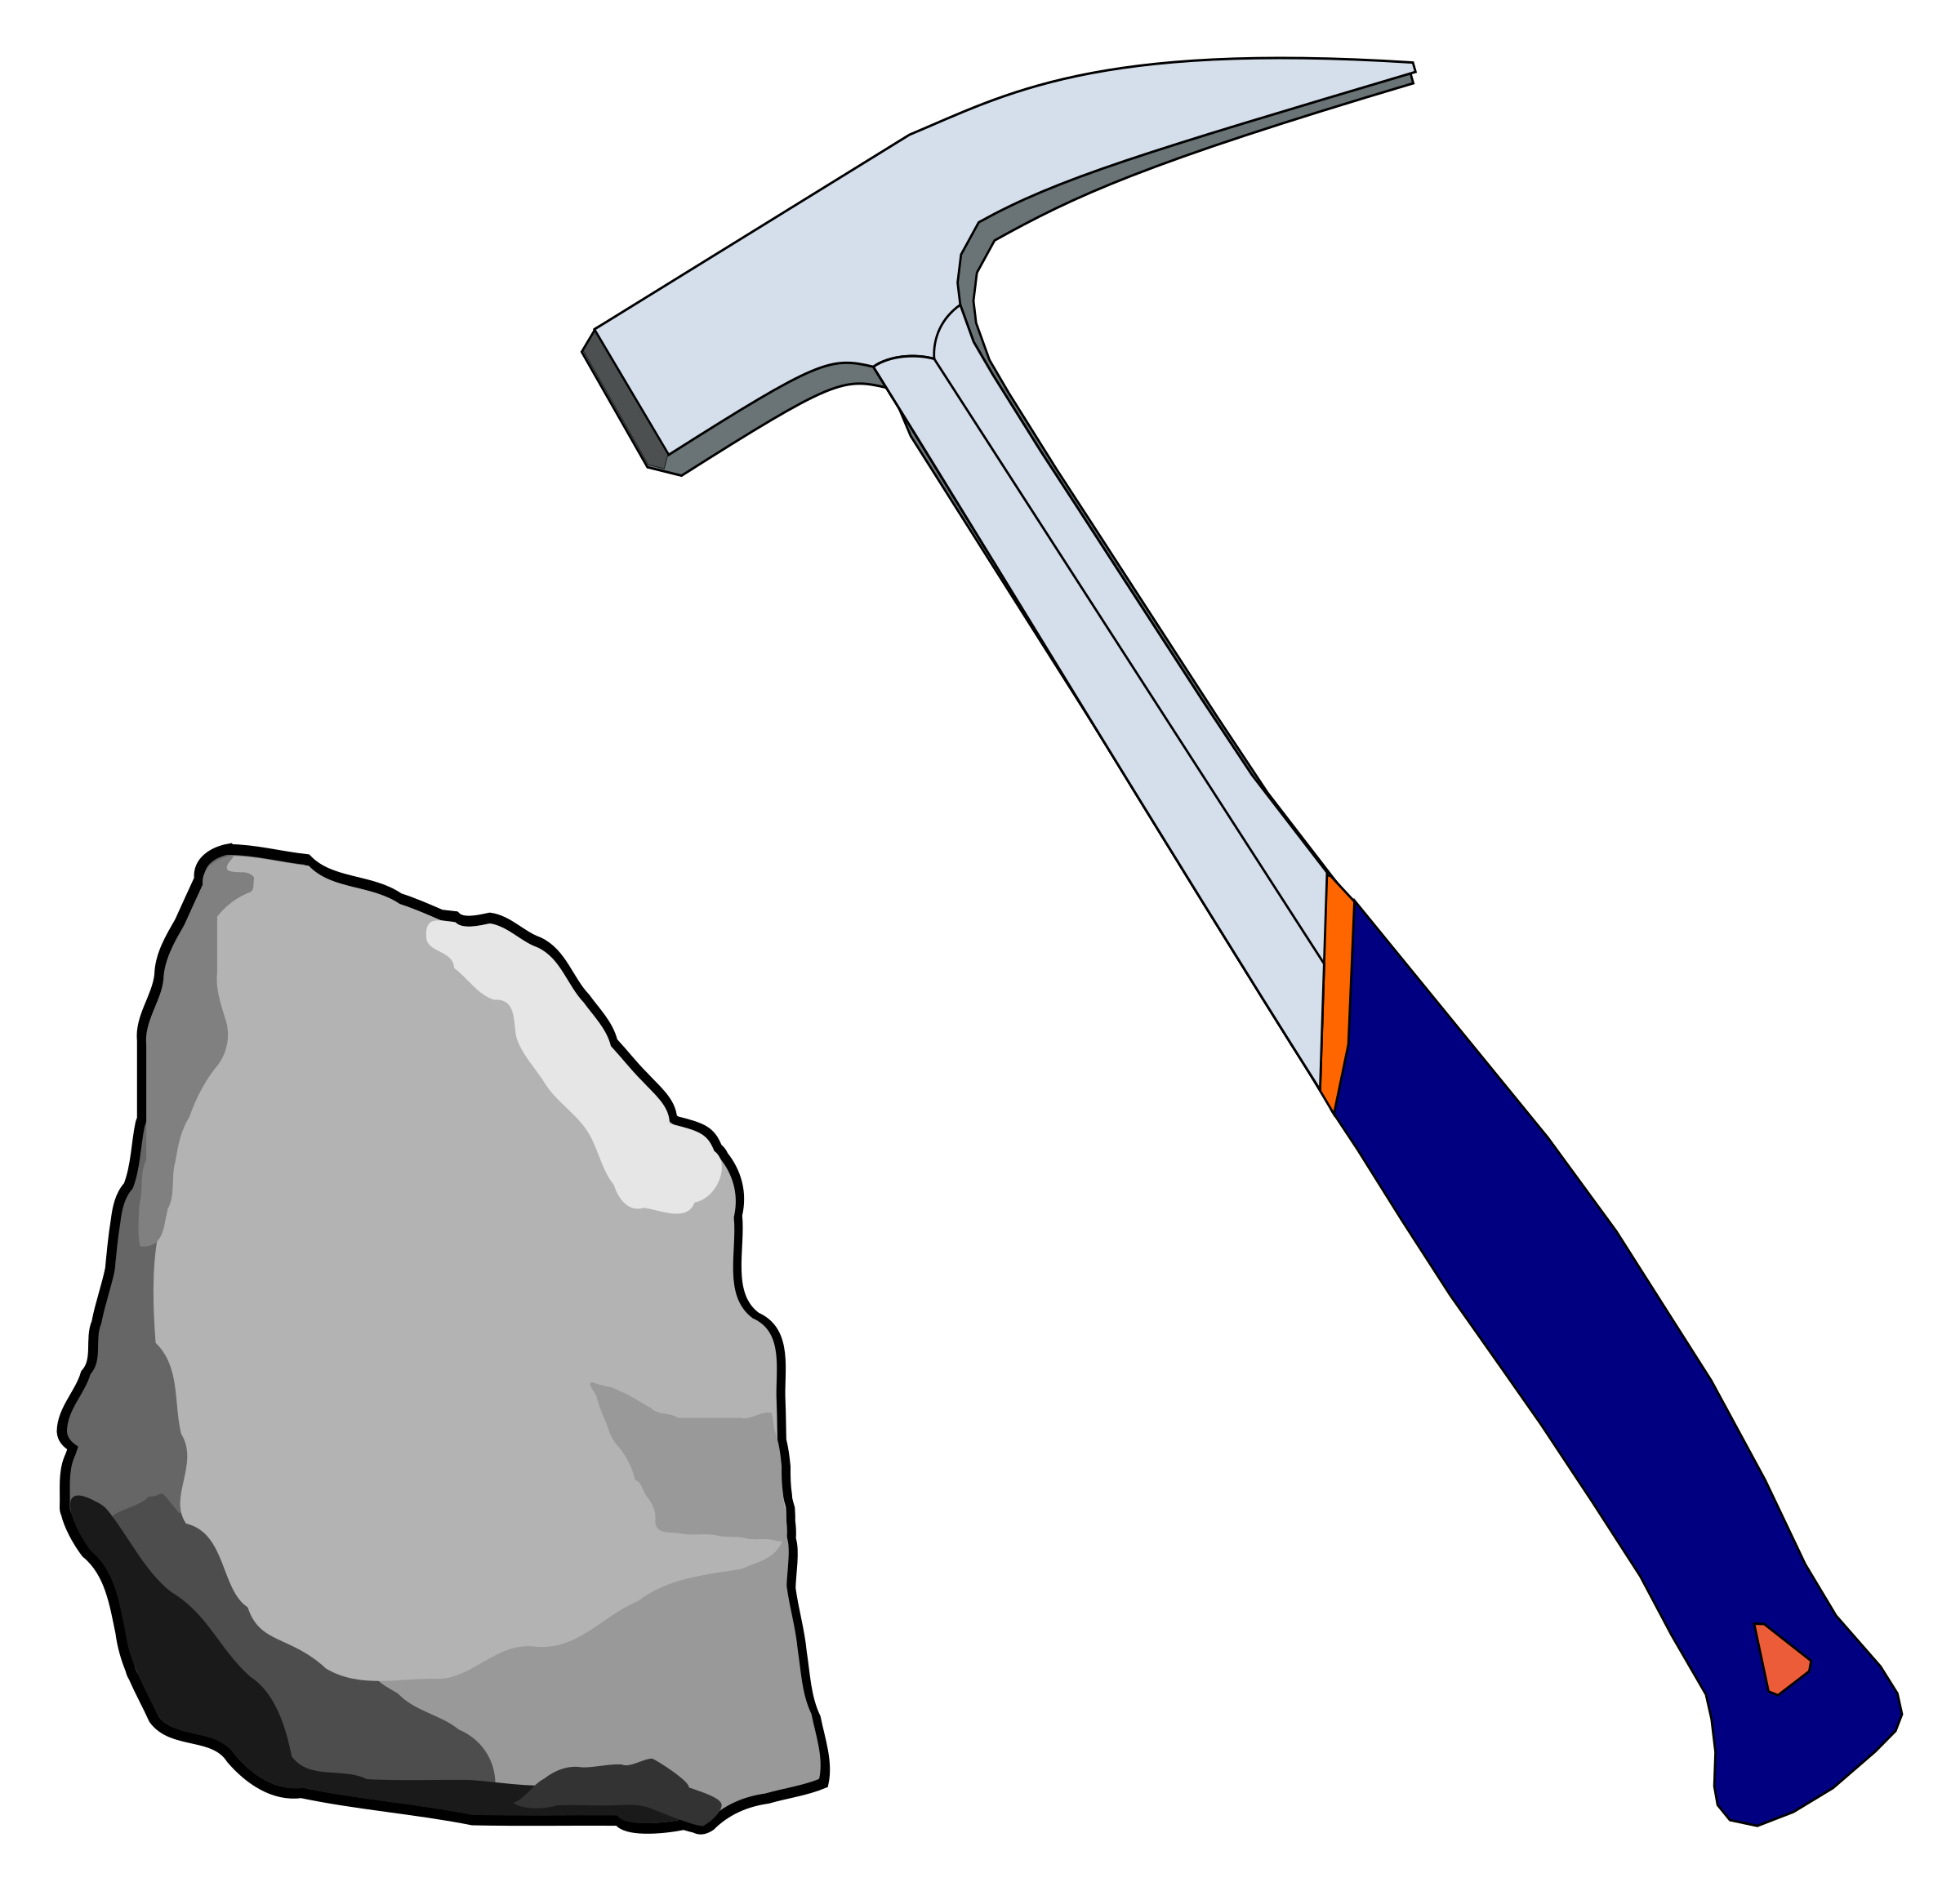 Geological big image png. Clipart hammer geology